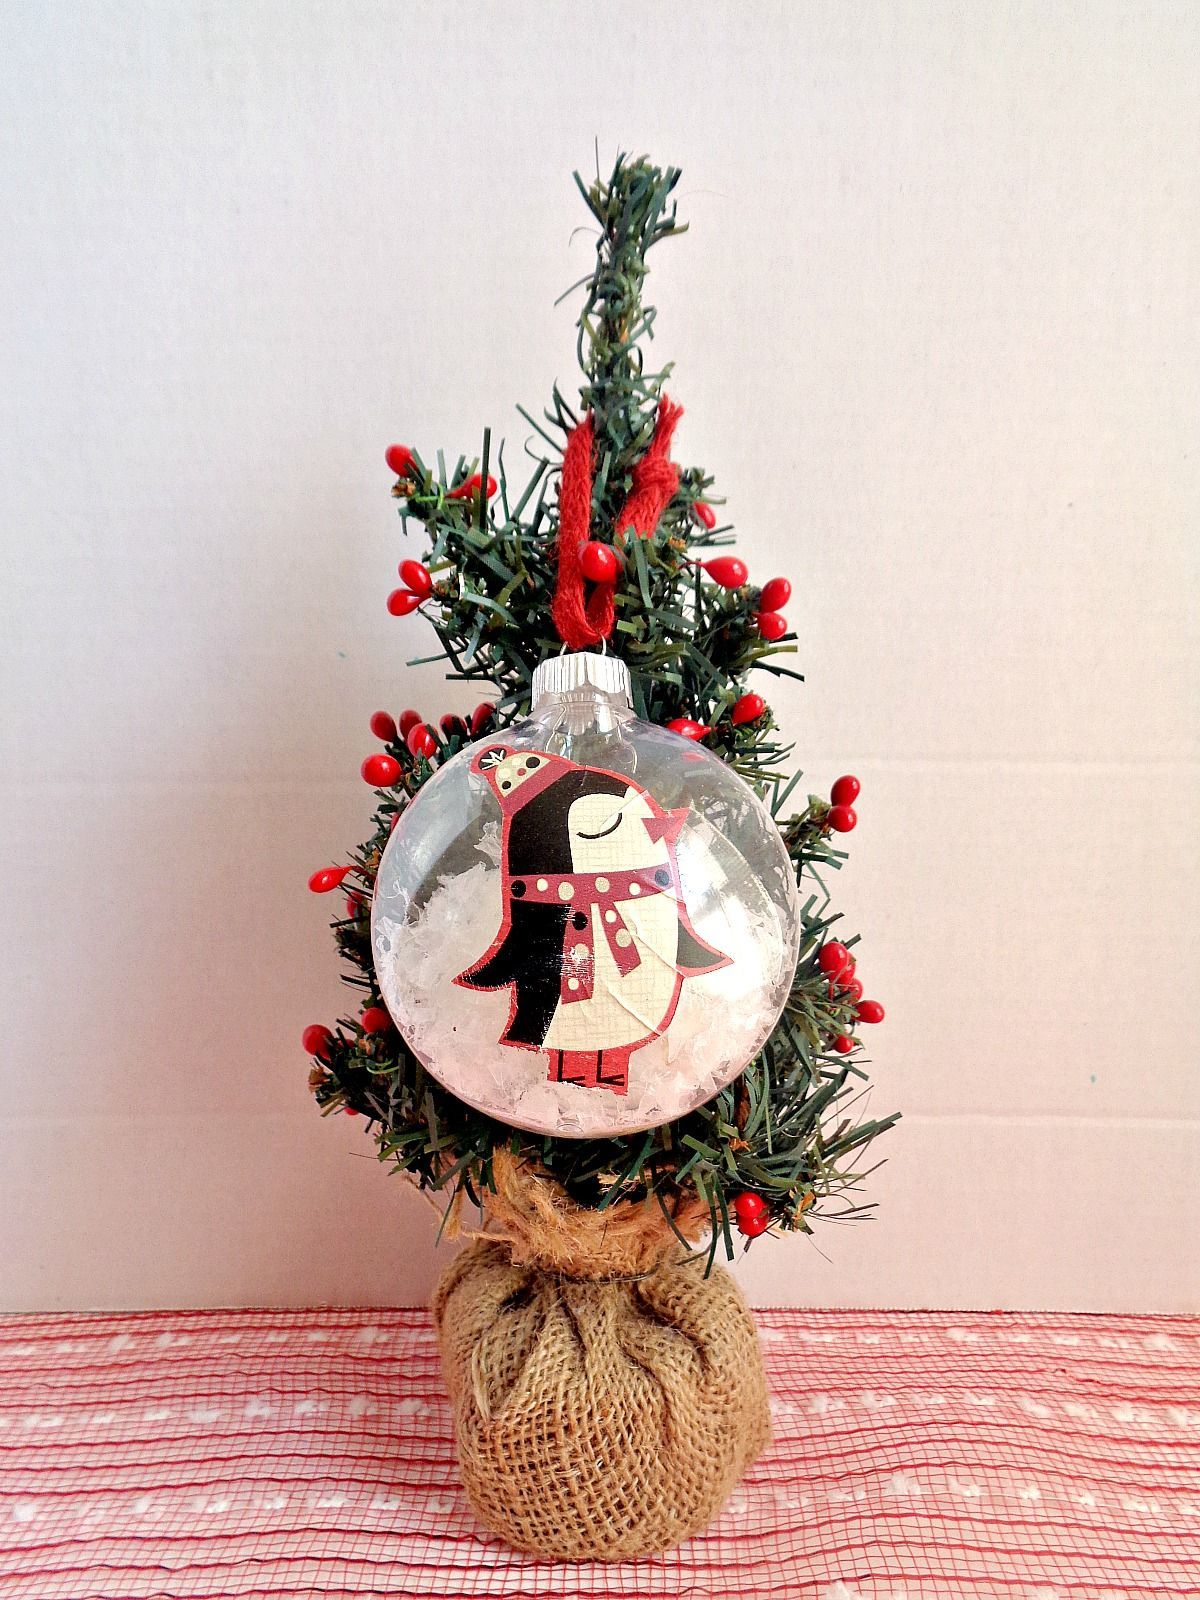 Ways To Use Scraps Of Wrapping Paper - Tree Ornament